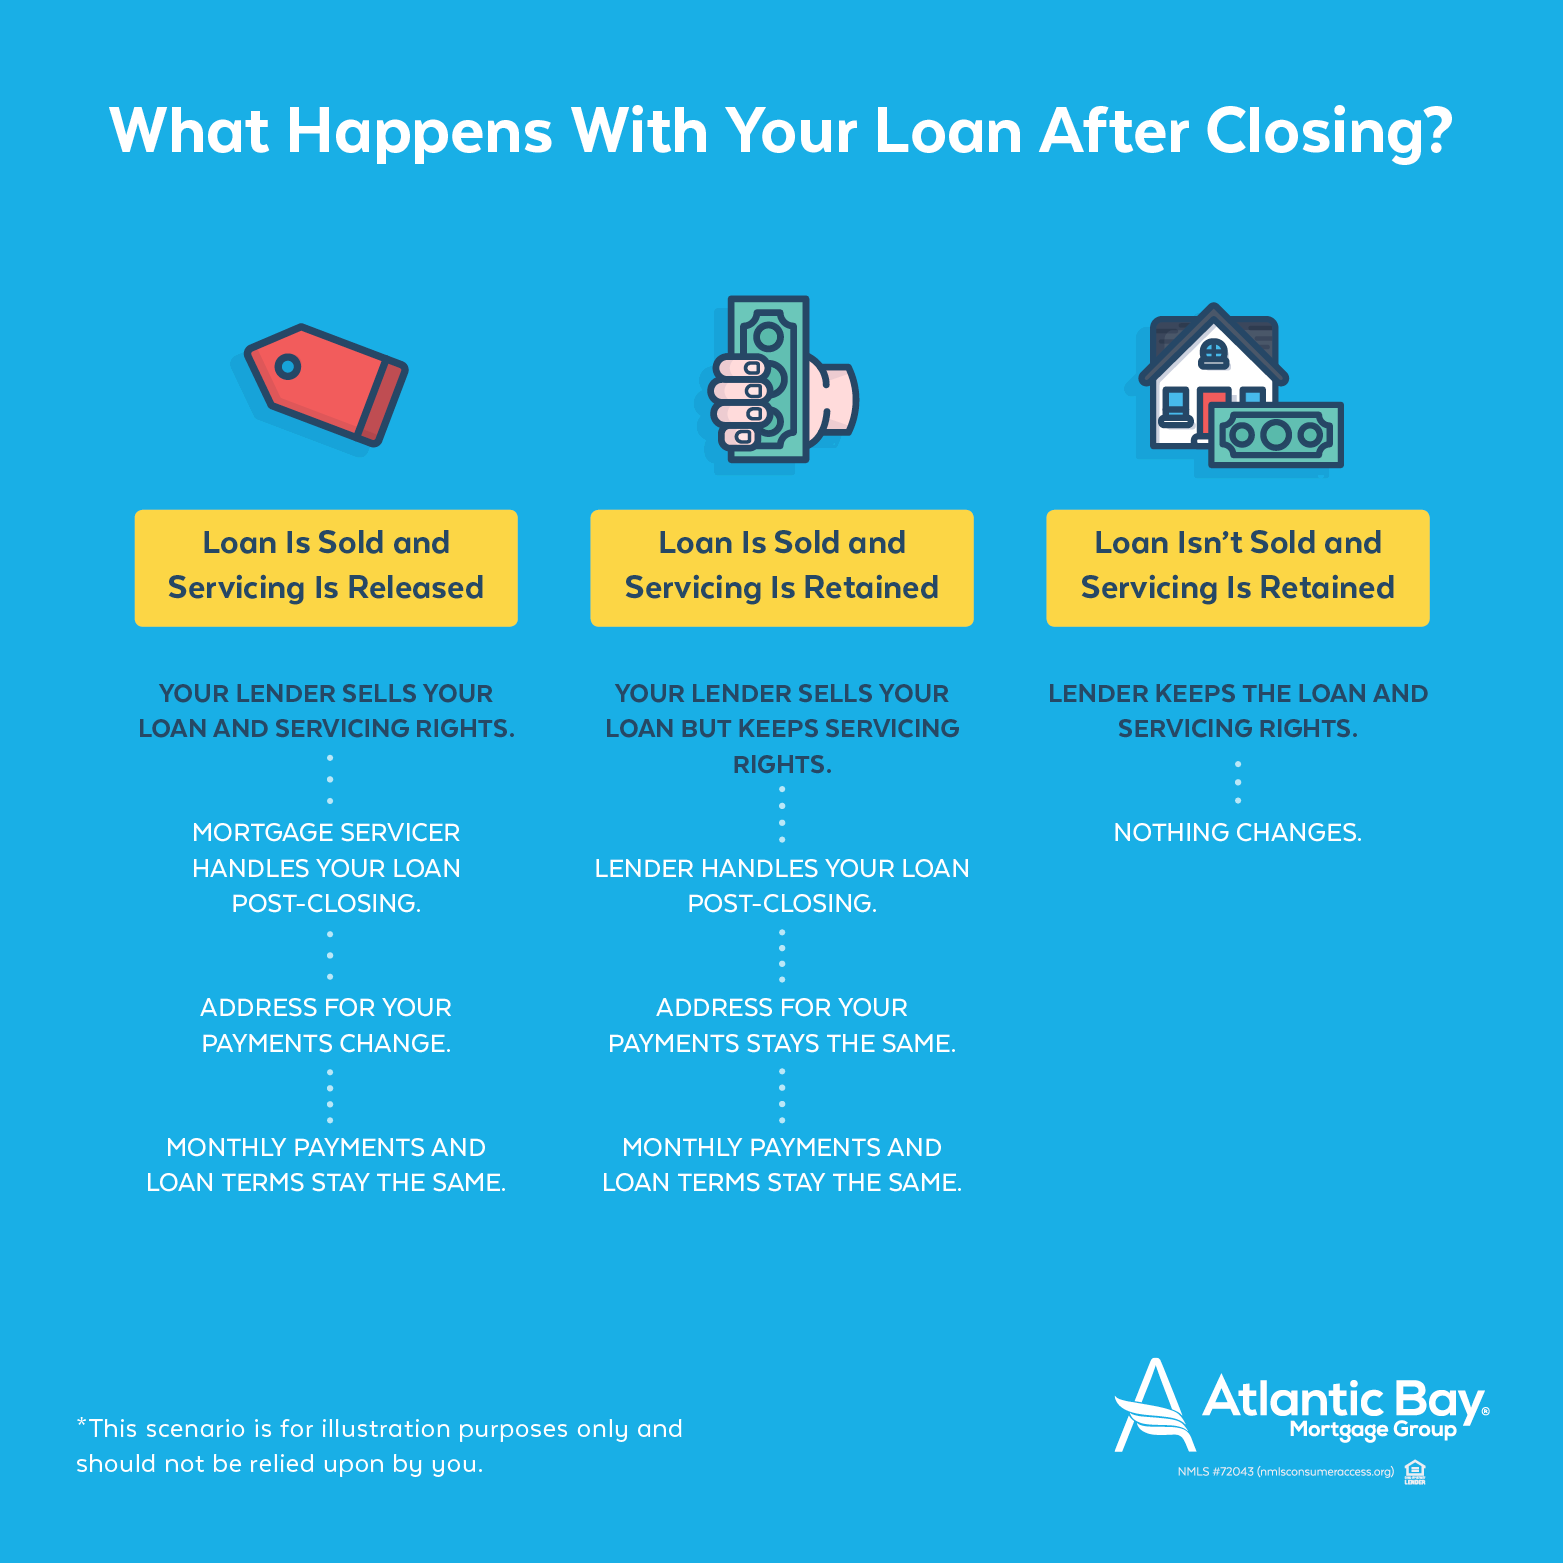 What Happens with Your Loan After Closing